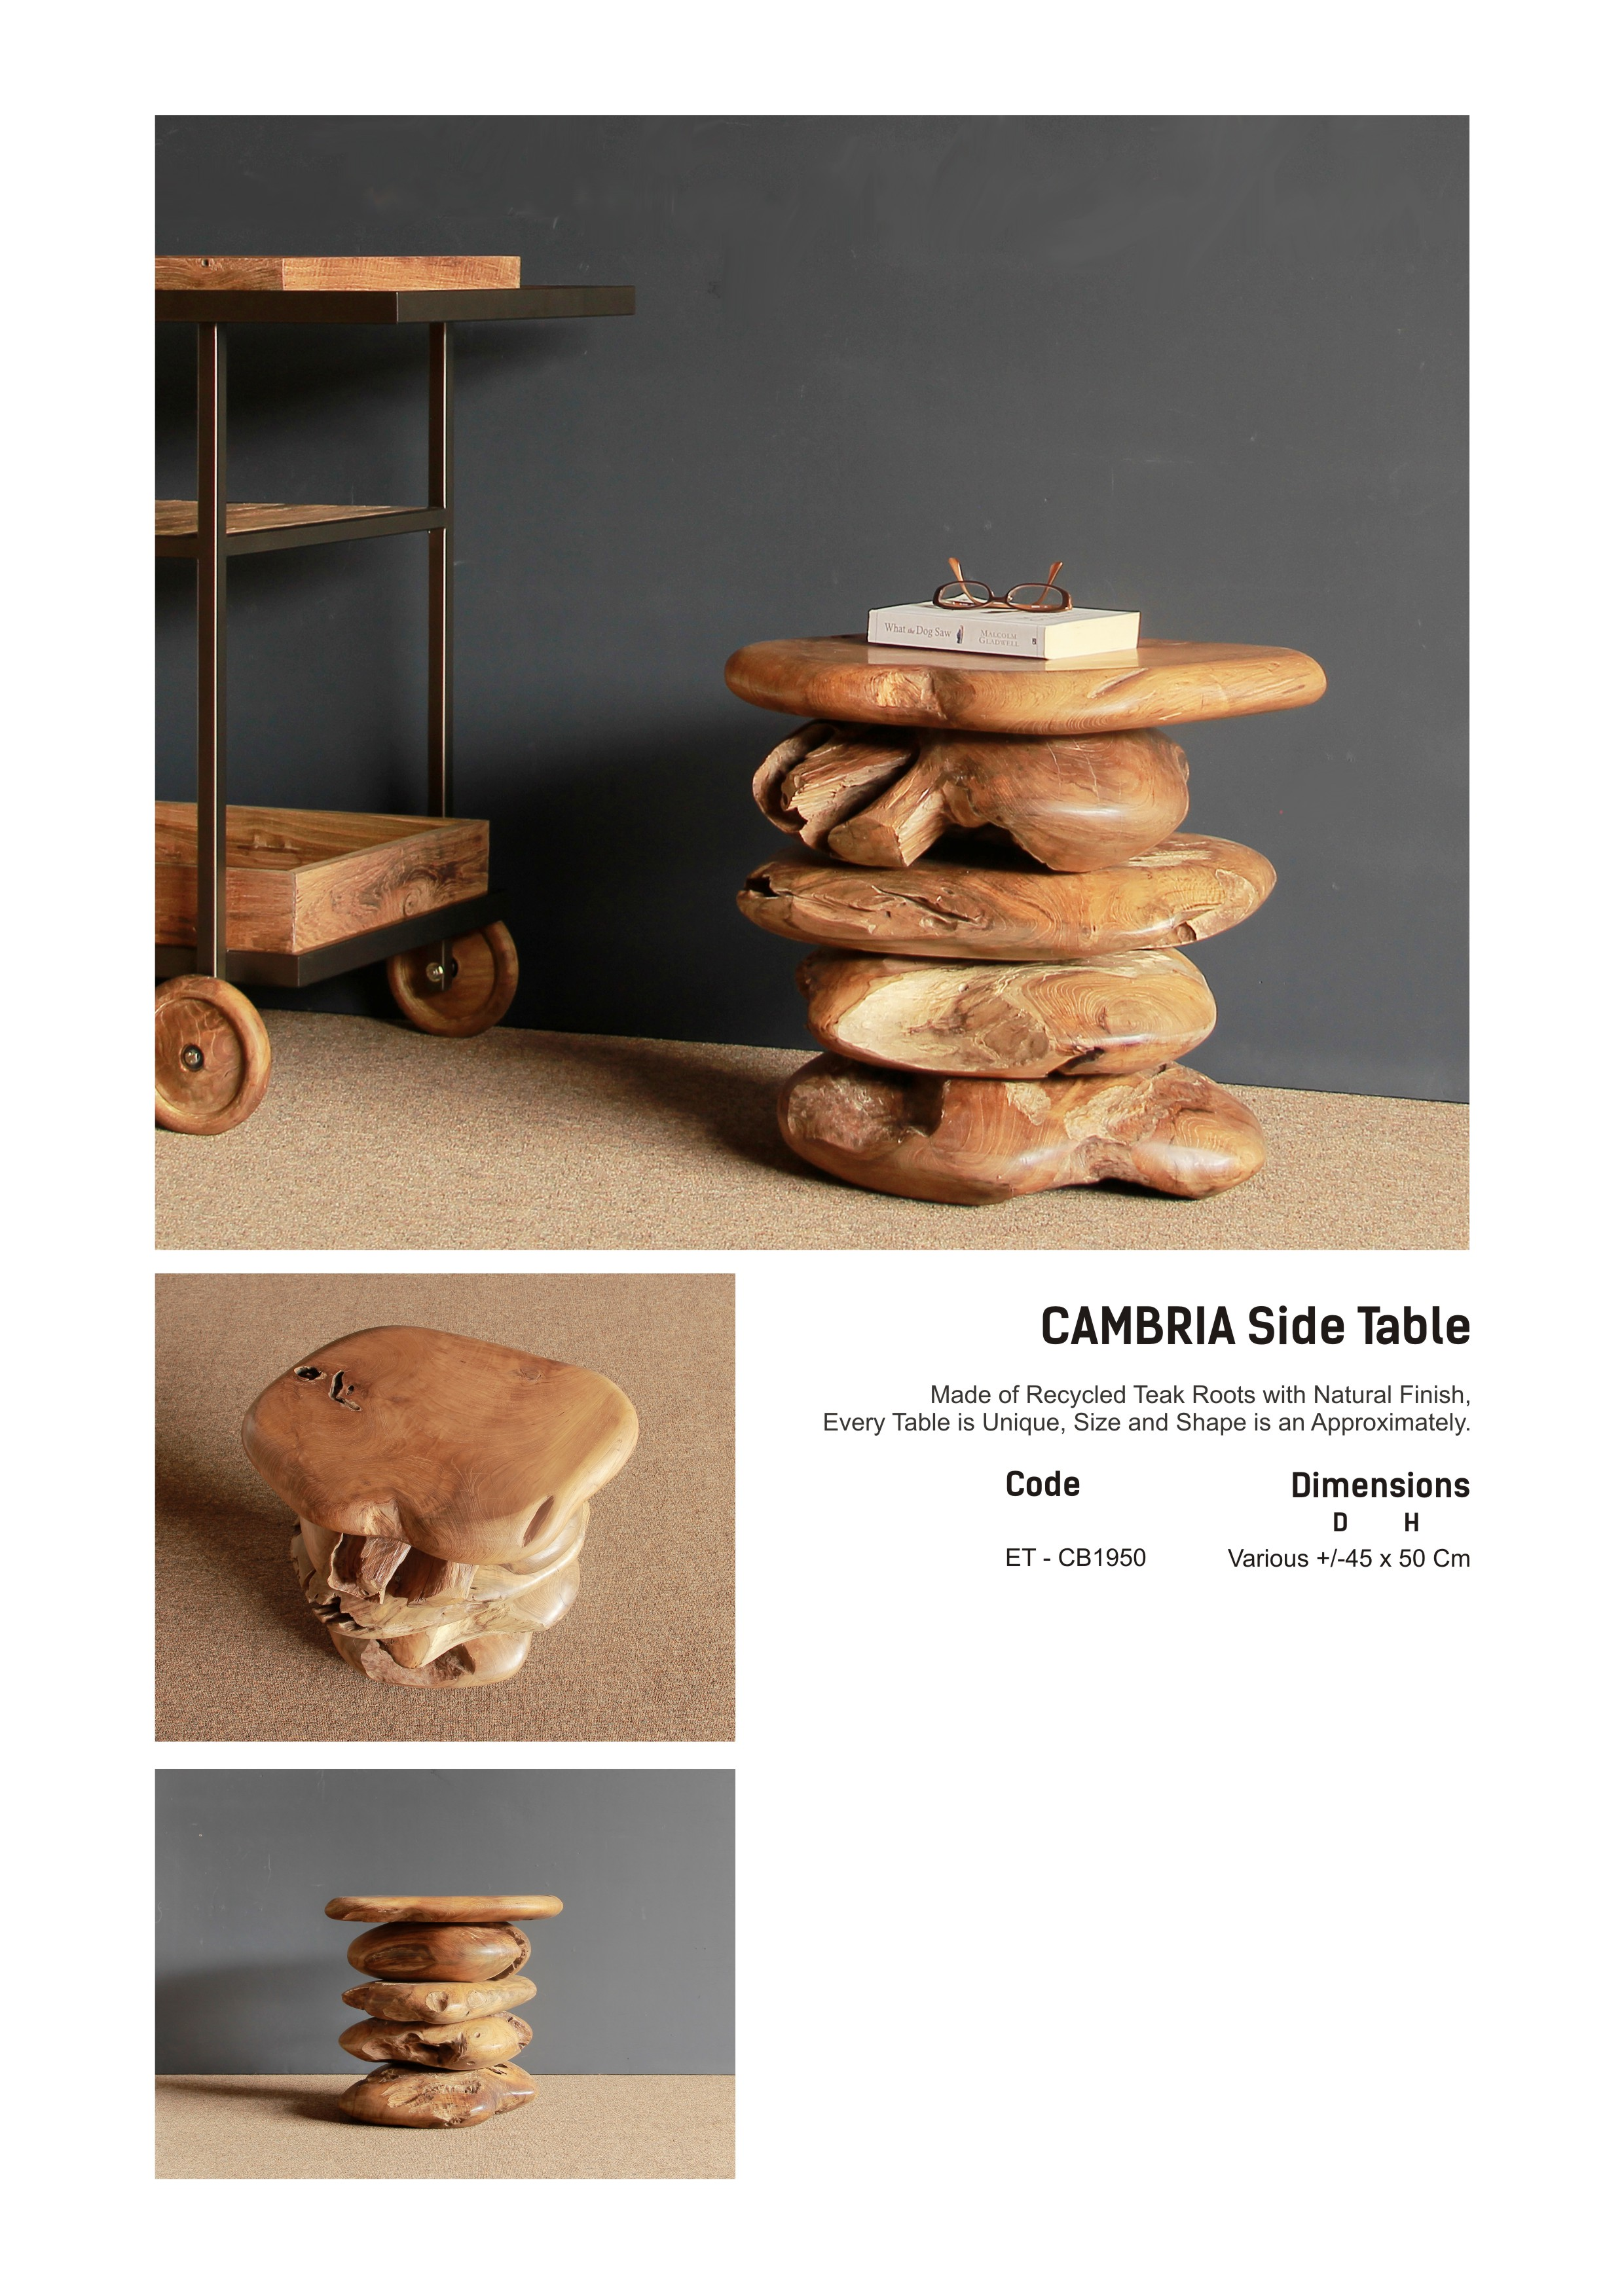 19. Cambria Side Table